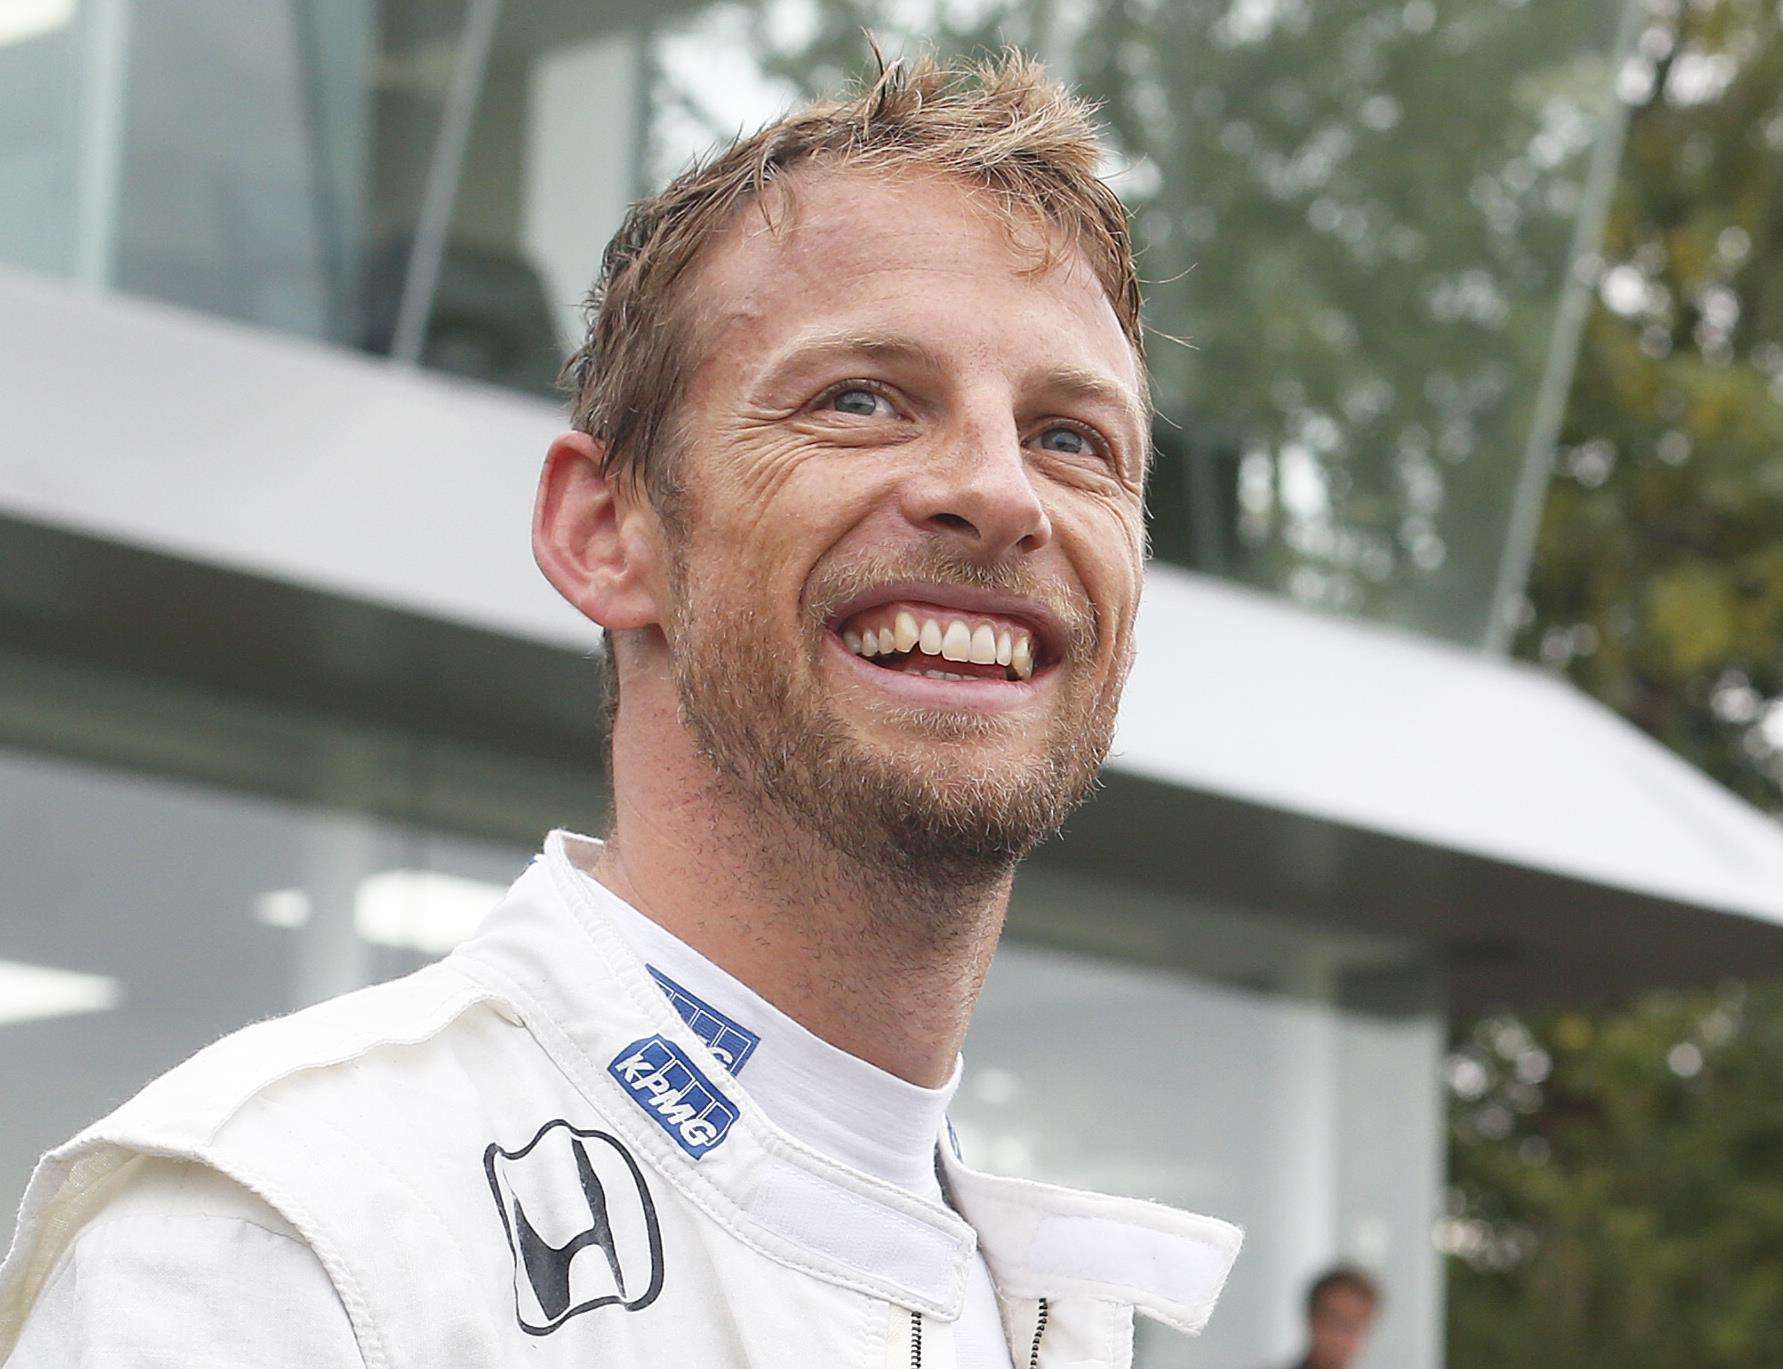 Jenson Button would pull in the crowds at Brands Hatch, says ex-F1 driver David Coulthard